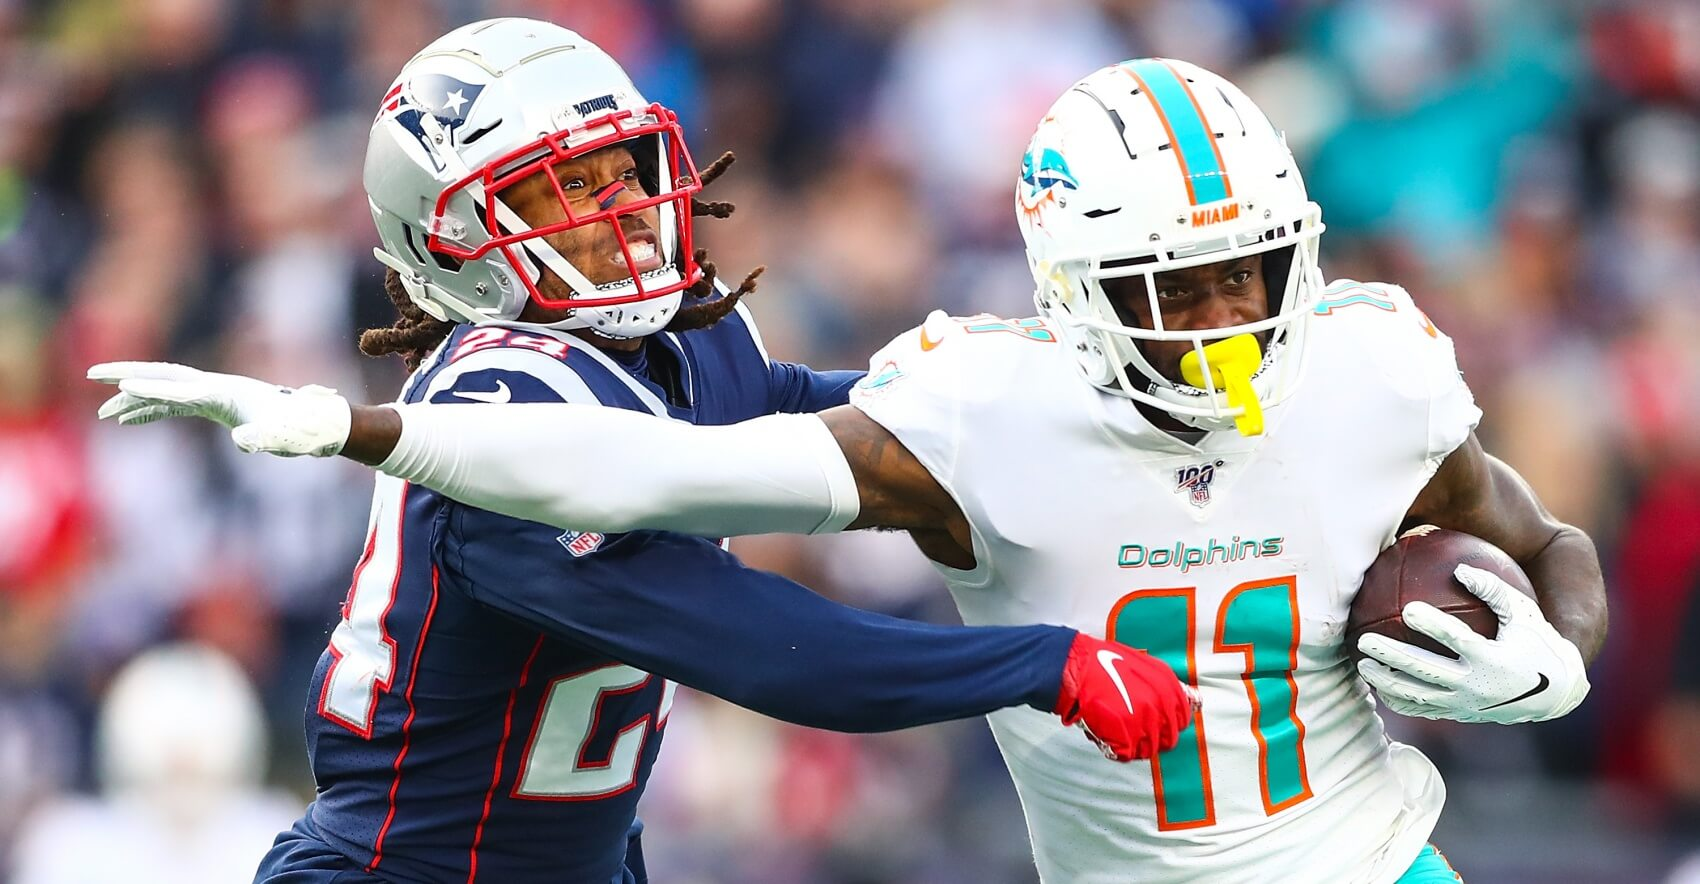 Fantasy Footballers Podcast Recap: The TRUTH about Top Tier Fantasy WRs in 2019